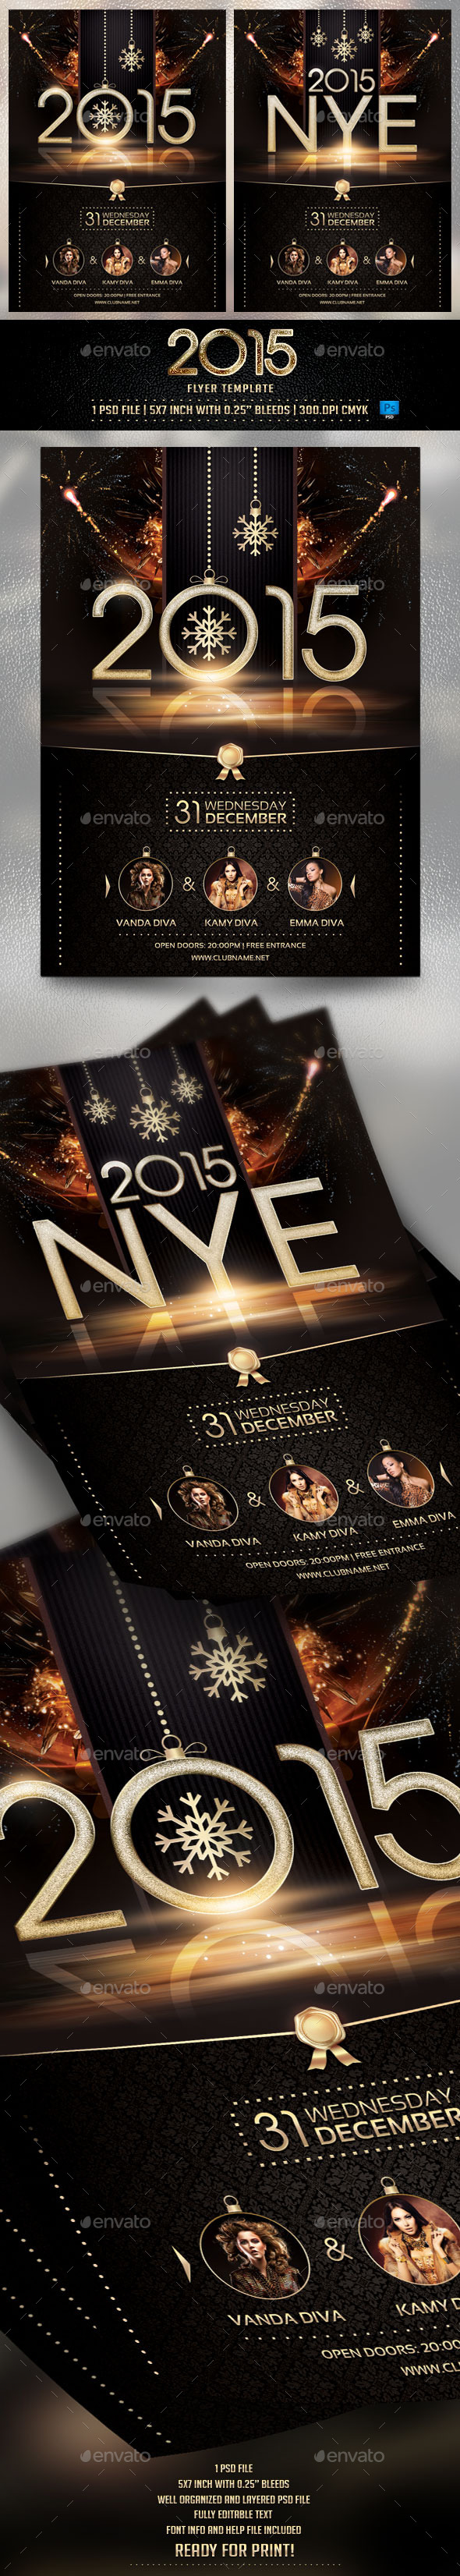 GraphicRiver 2015 NYE Flyer Template 9562859